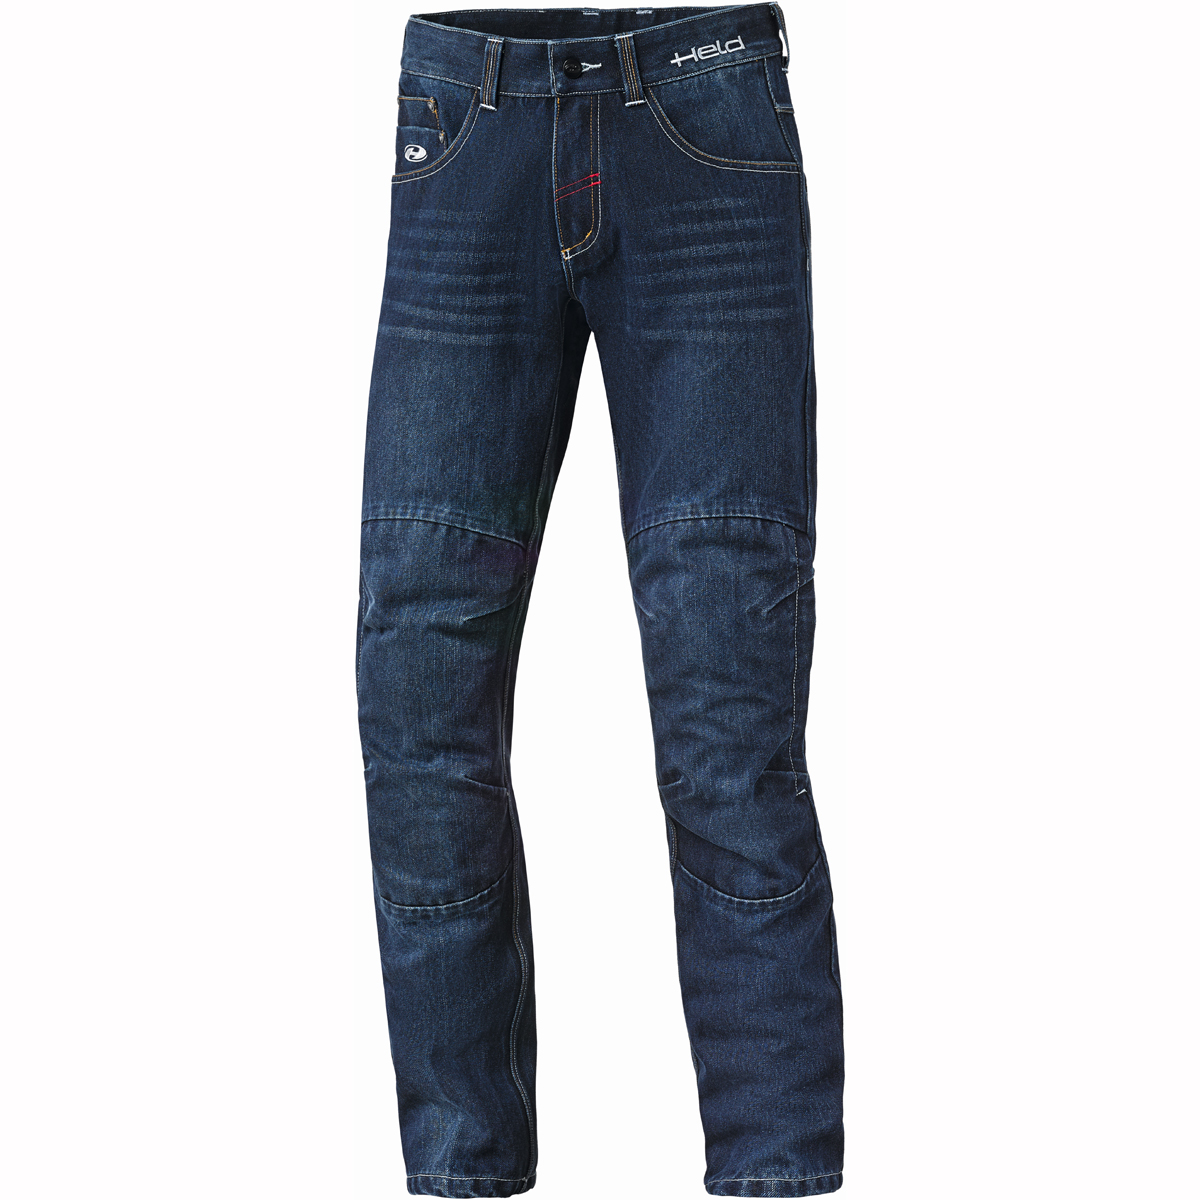 Held 6603 Barrier Jeans